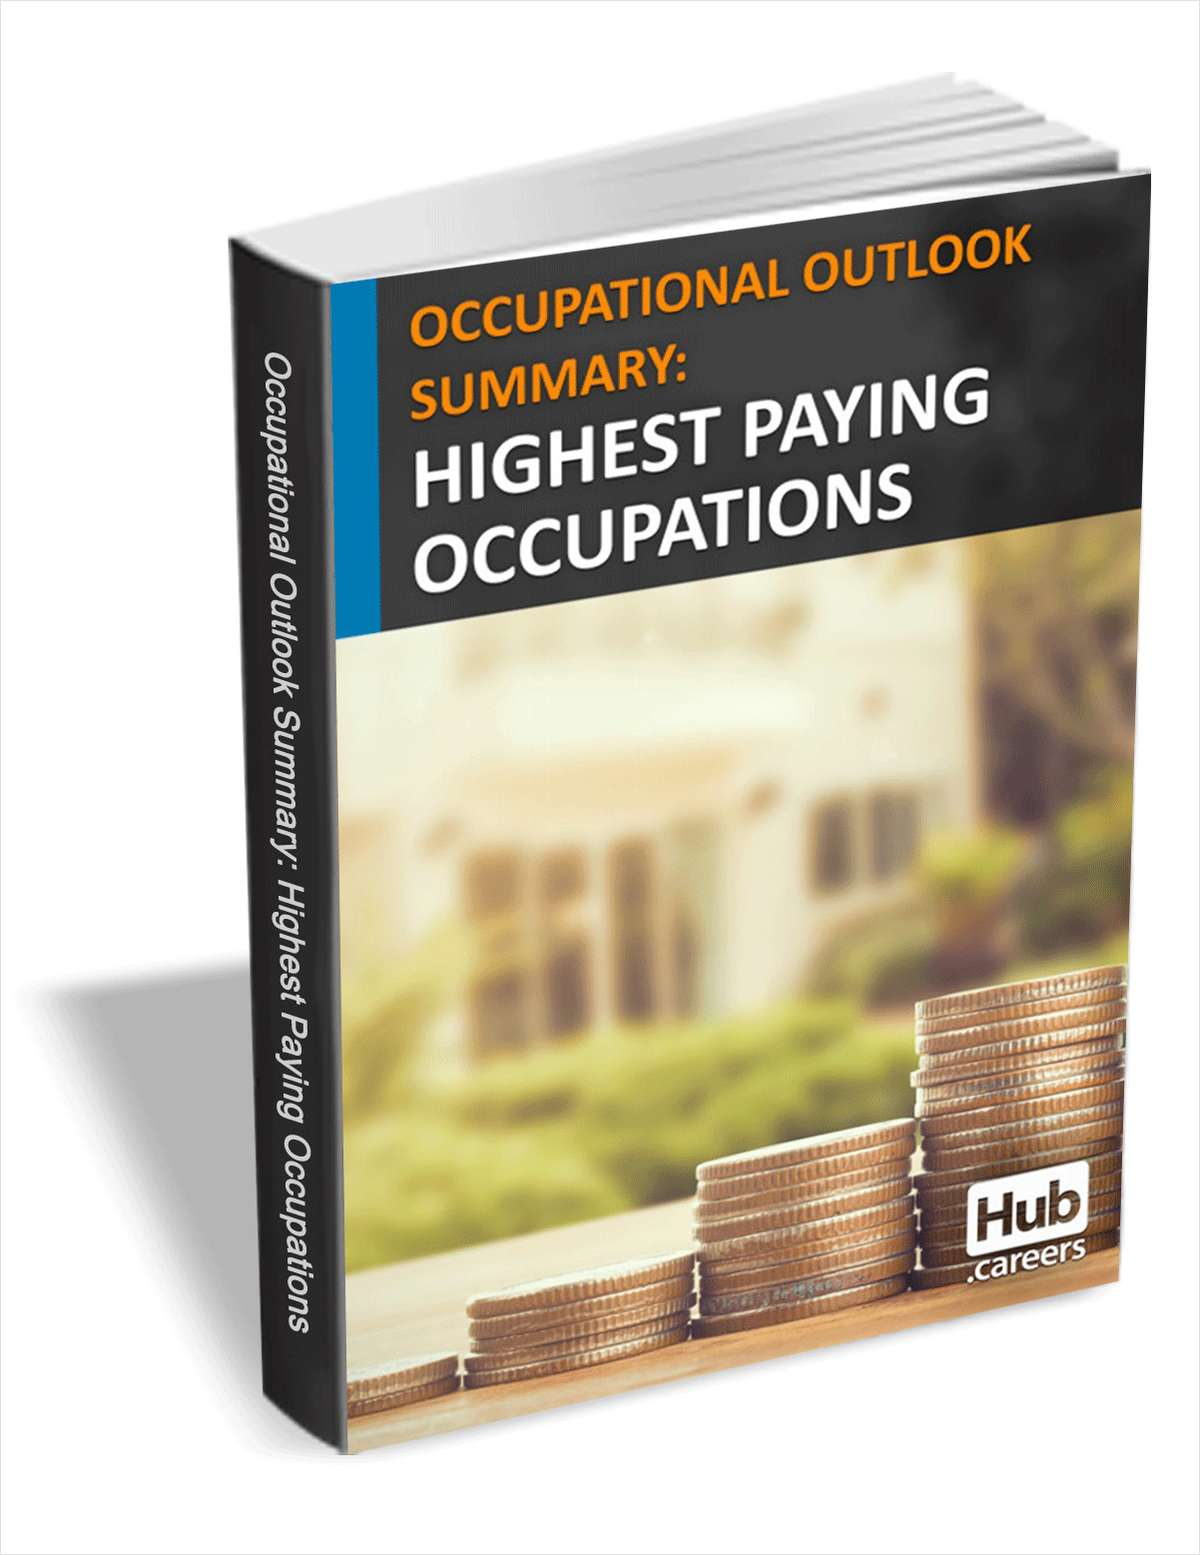 Download Highest Paying Occupations